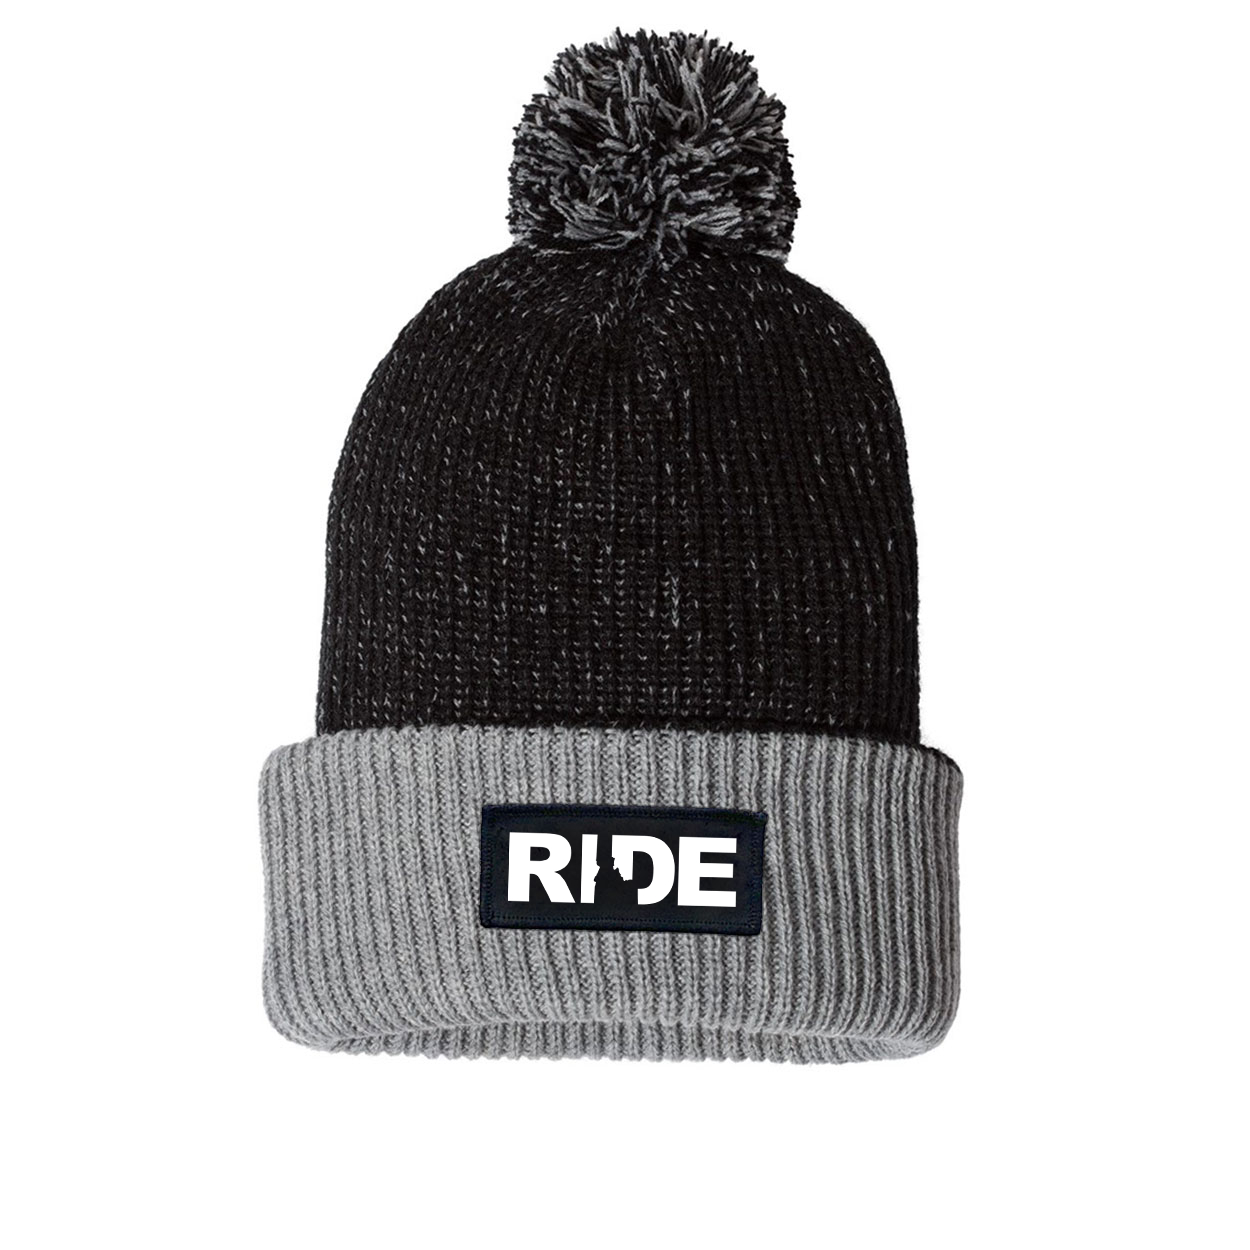 Ride Idaho Night Out Woven Patch Roll Up Pom Knit Beanie Black/Gray (White Logo)